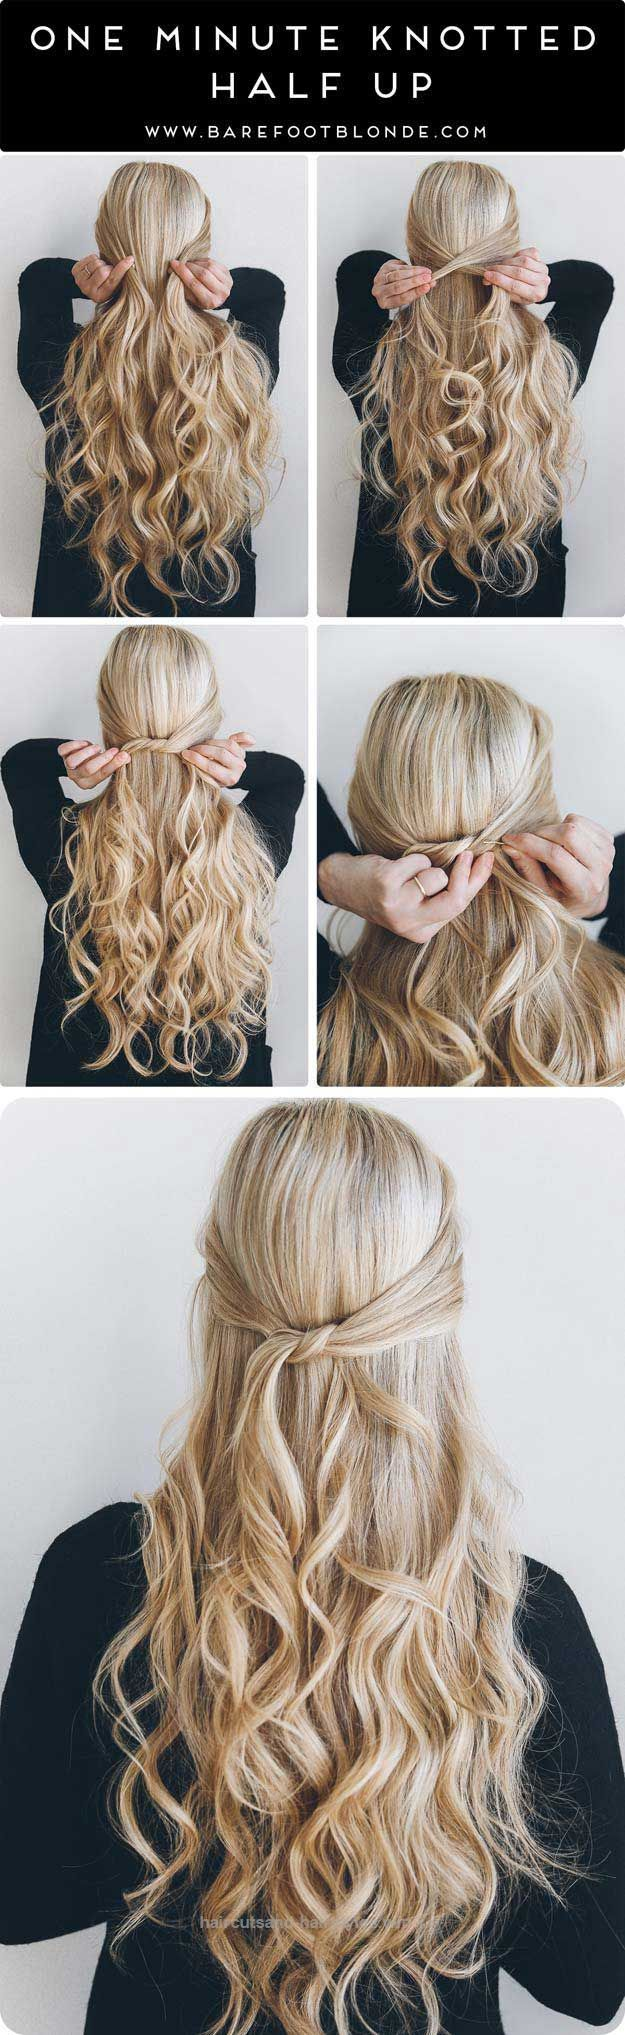 Great Amazing Half Up-Half Down Hairstyles For Long Hair – One Minute Knotted Half Up – Easy Step By Step Tutorials And Tips For Hair Styles And Hair Ideas For Prom, For Th ..